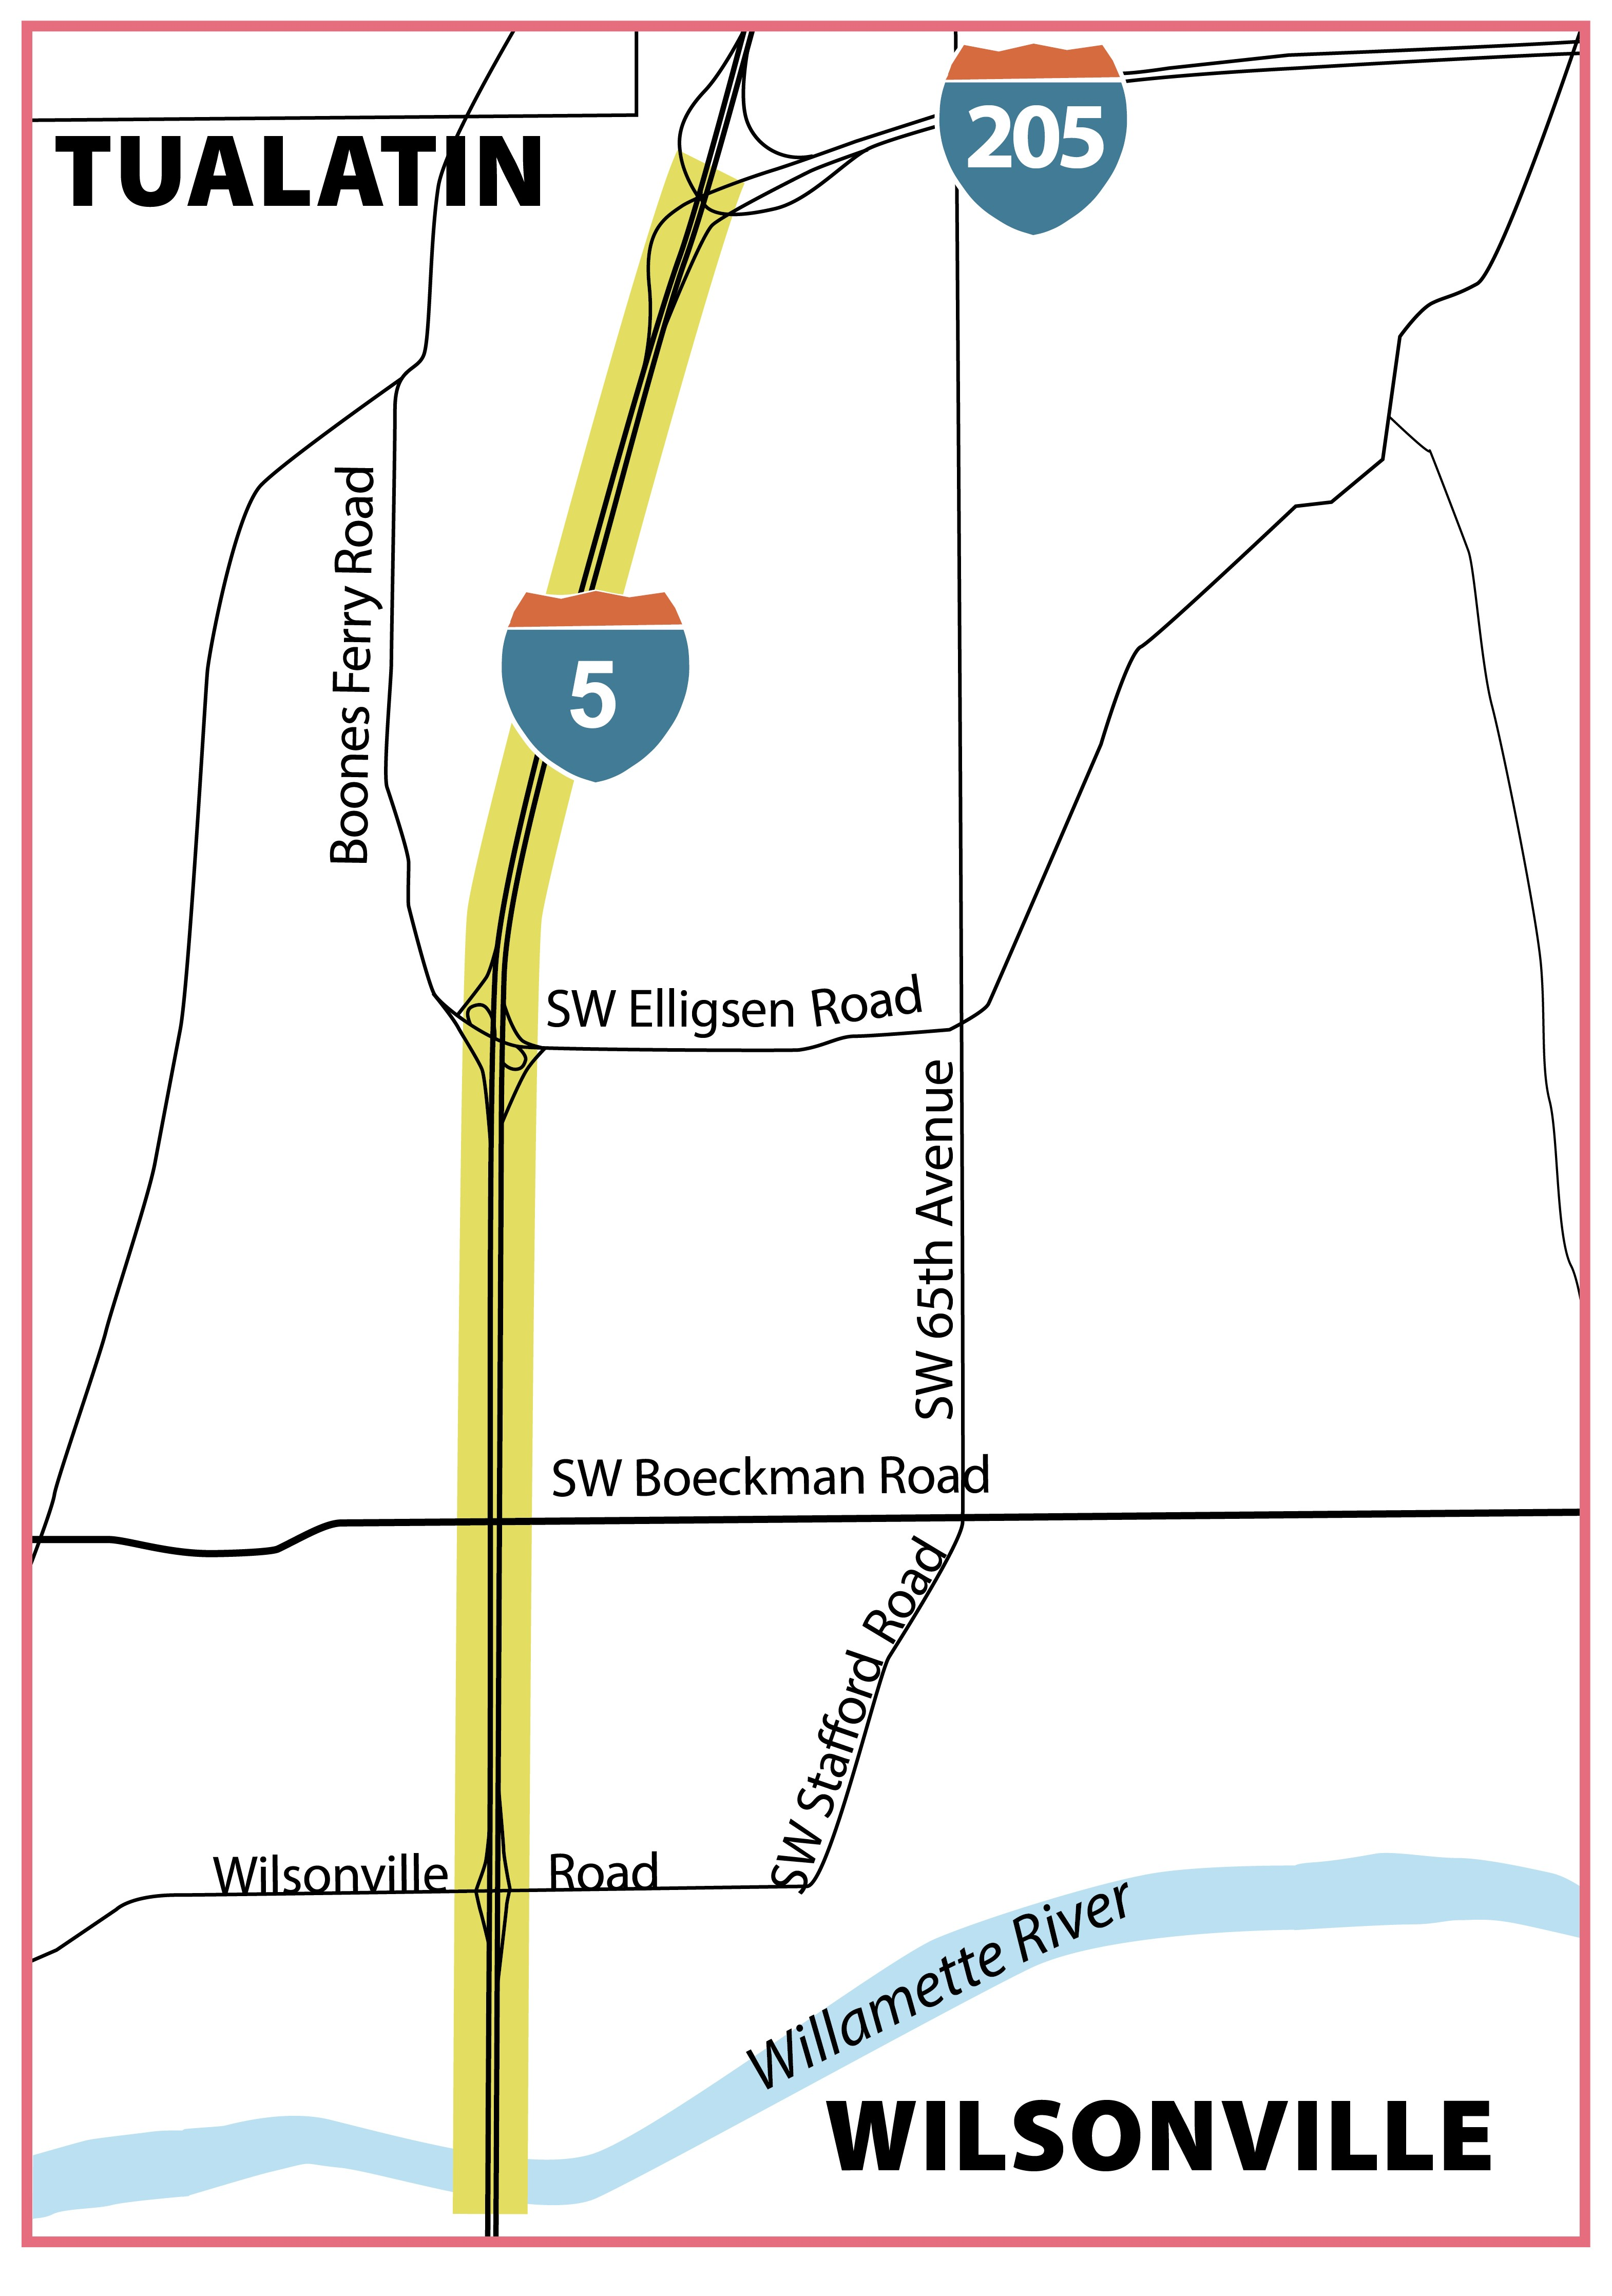 The project limits are from I-205 to Wilsonville.